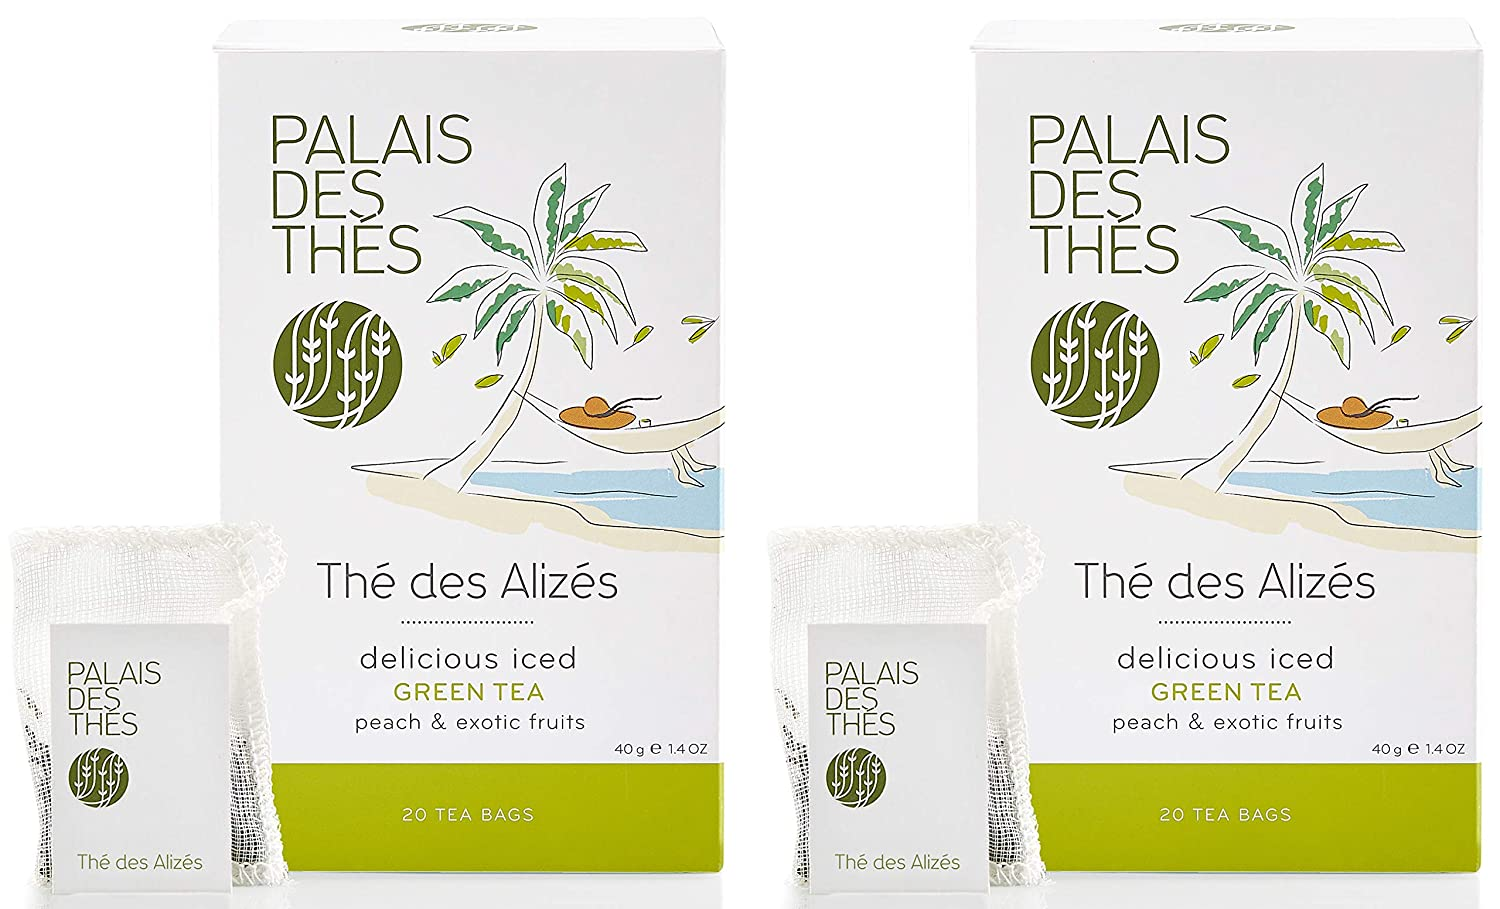 Palais des Thés Thé Limited Special Price Alizes Finally popular brand Green Peach and Ex Tea with